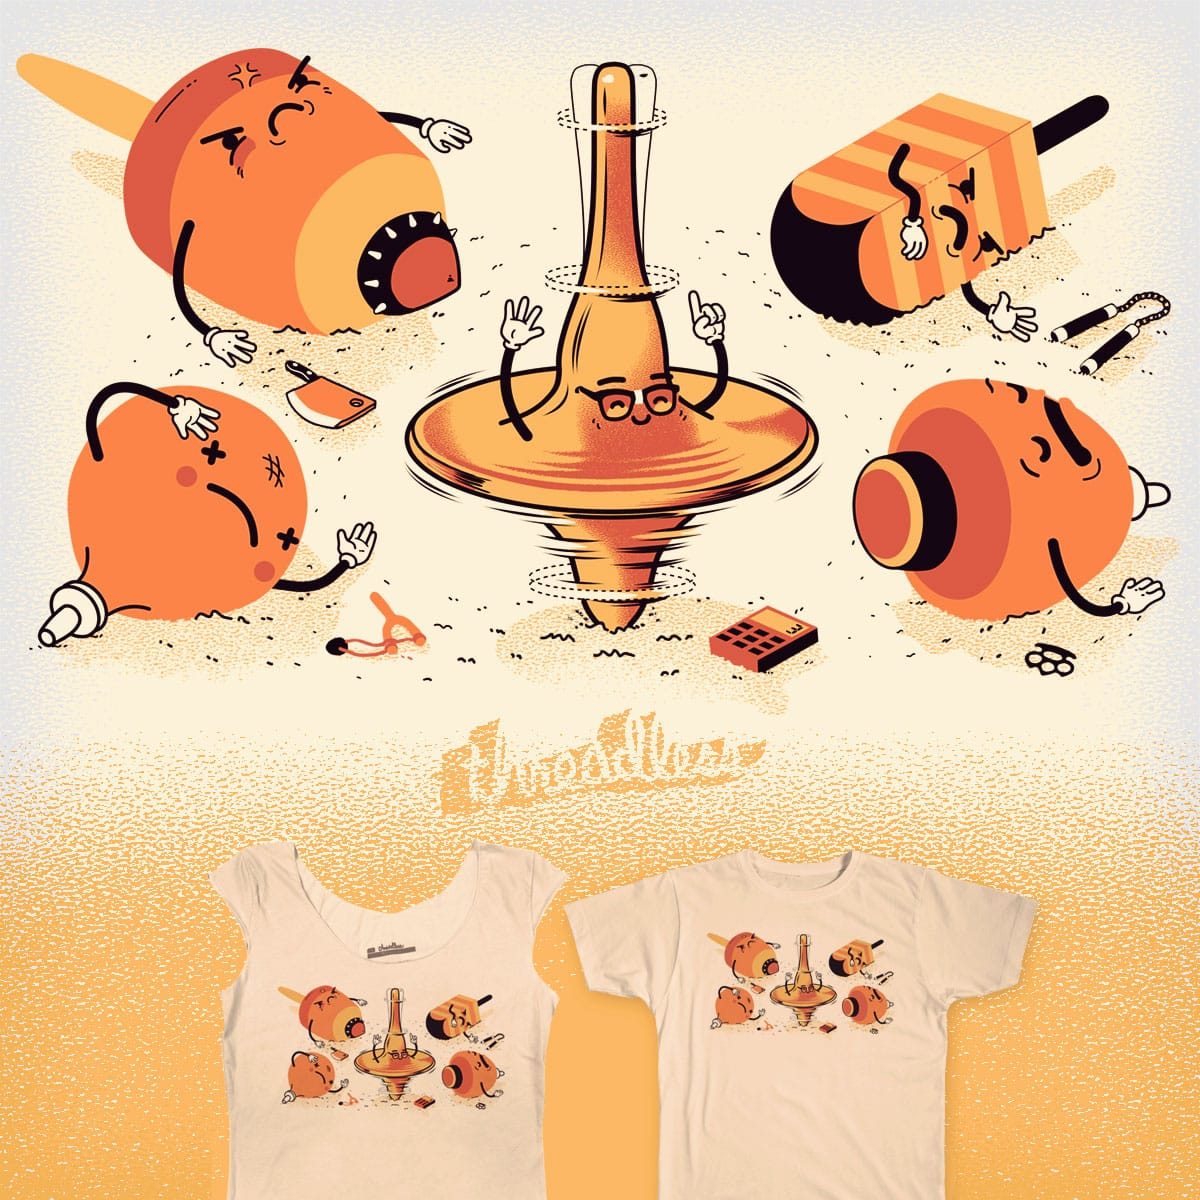 Bullying-ception by metalsan on Threadless